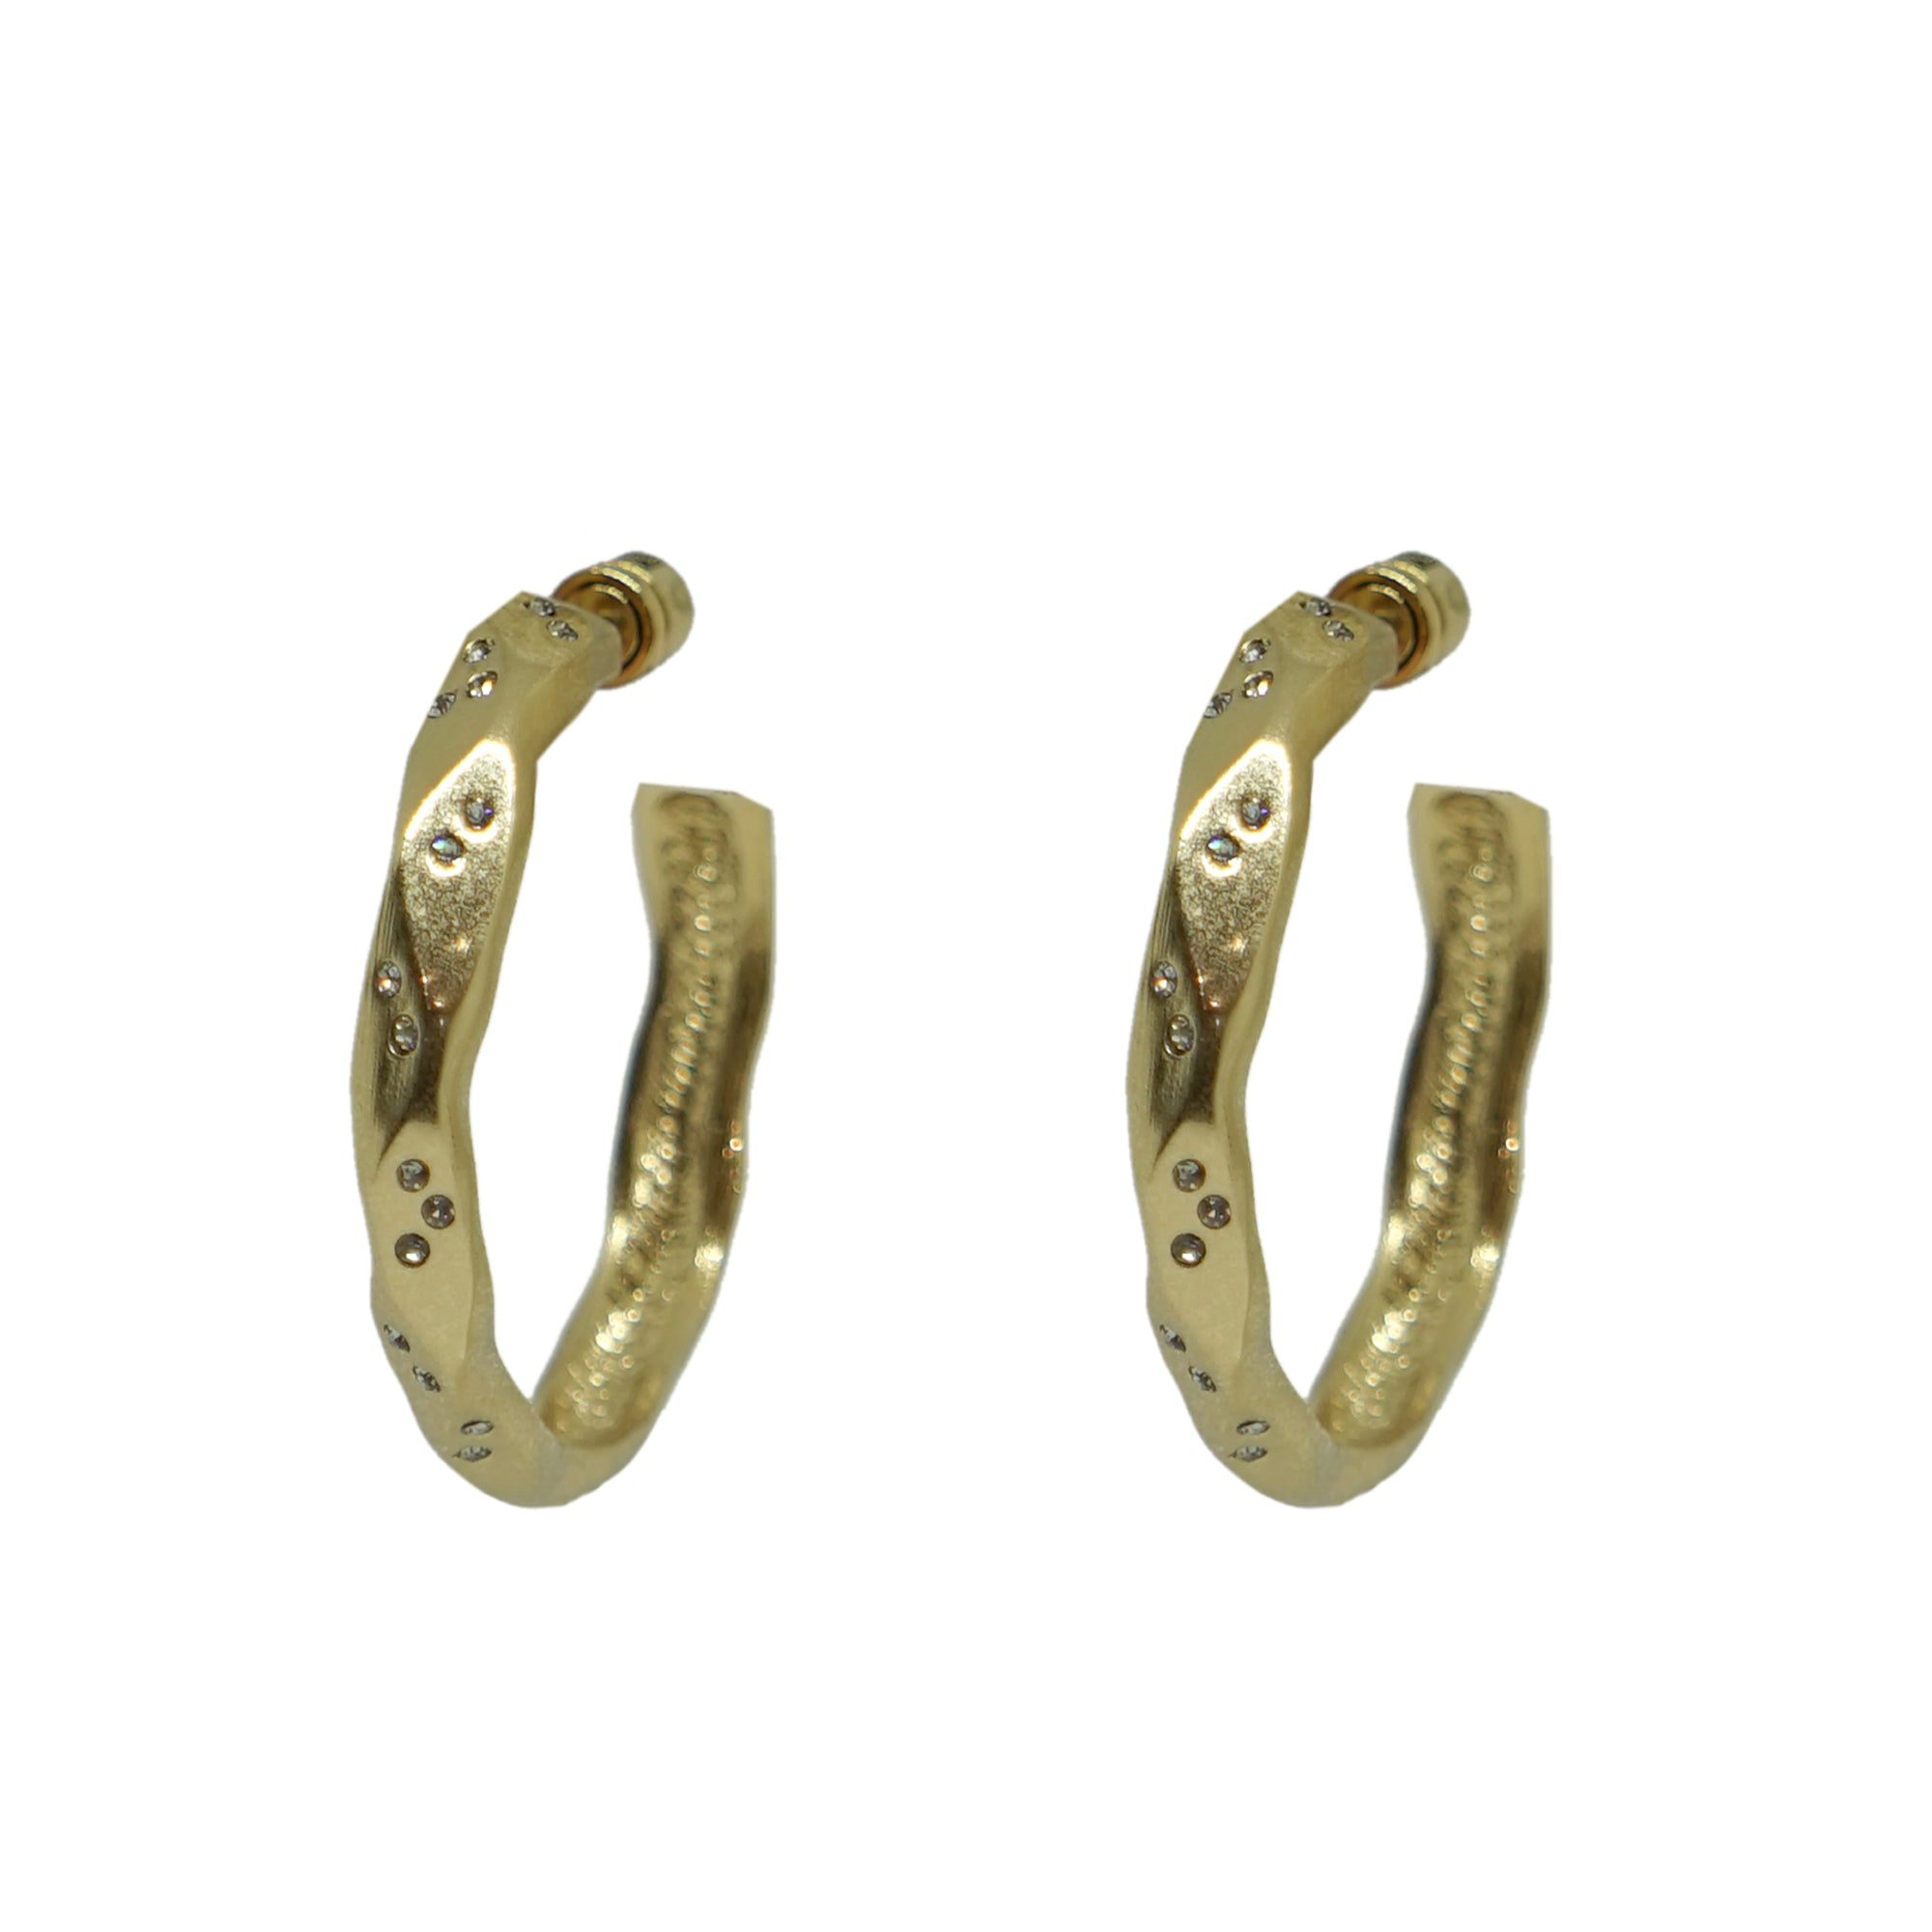 "GOLD THIN WAVE 1.5"" IMPRESSION HOOPS"